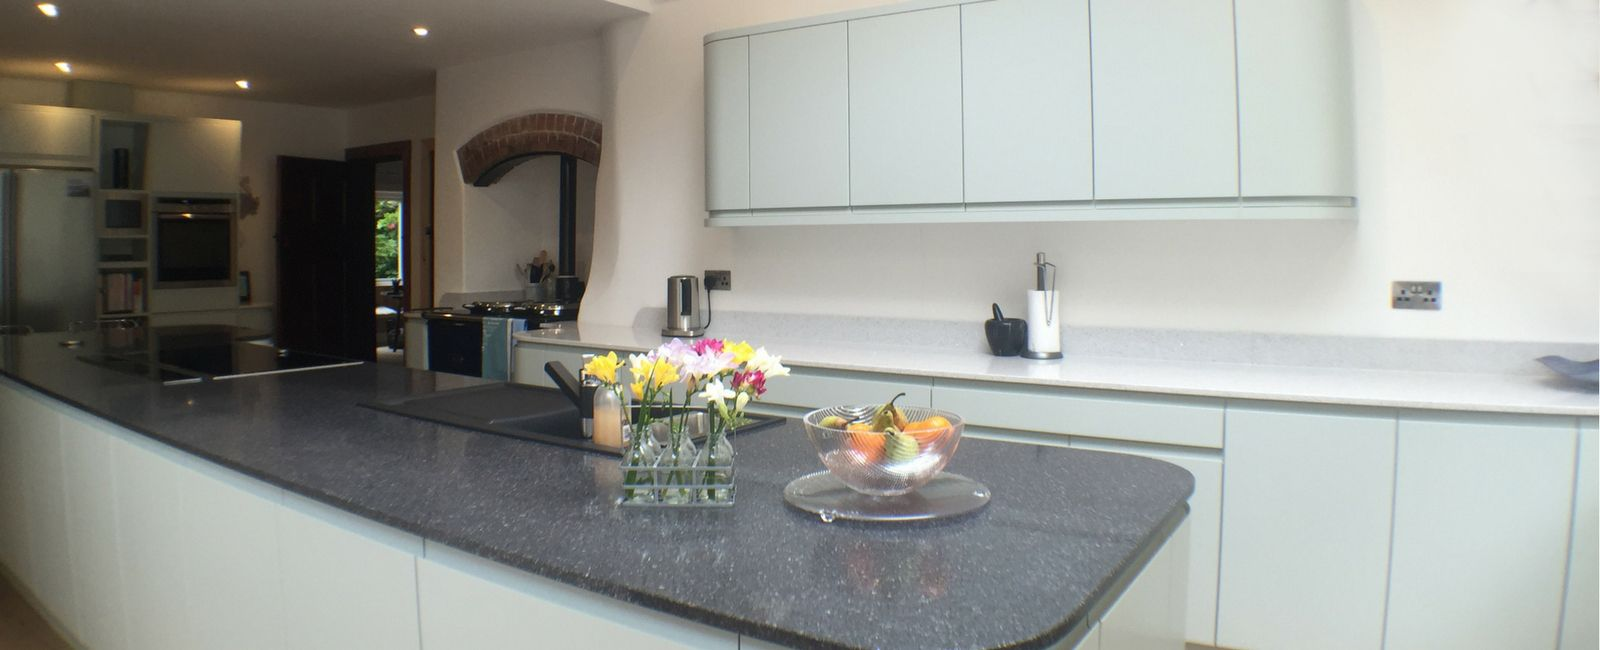 Wisteria Cottage Kitchen Simply Kitchens, Plymouth. Kitchen Design And  Fitting.